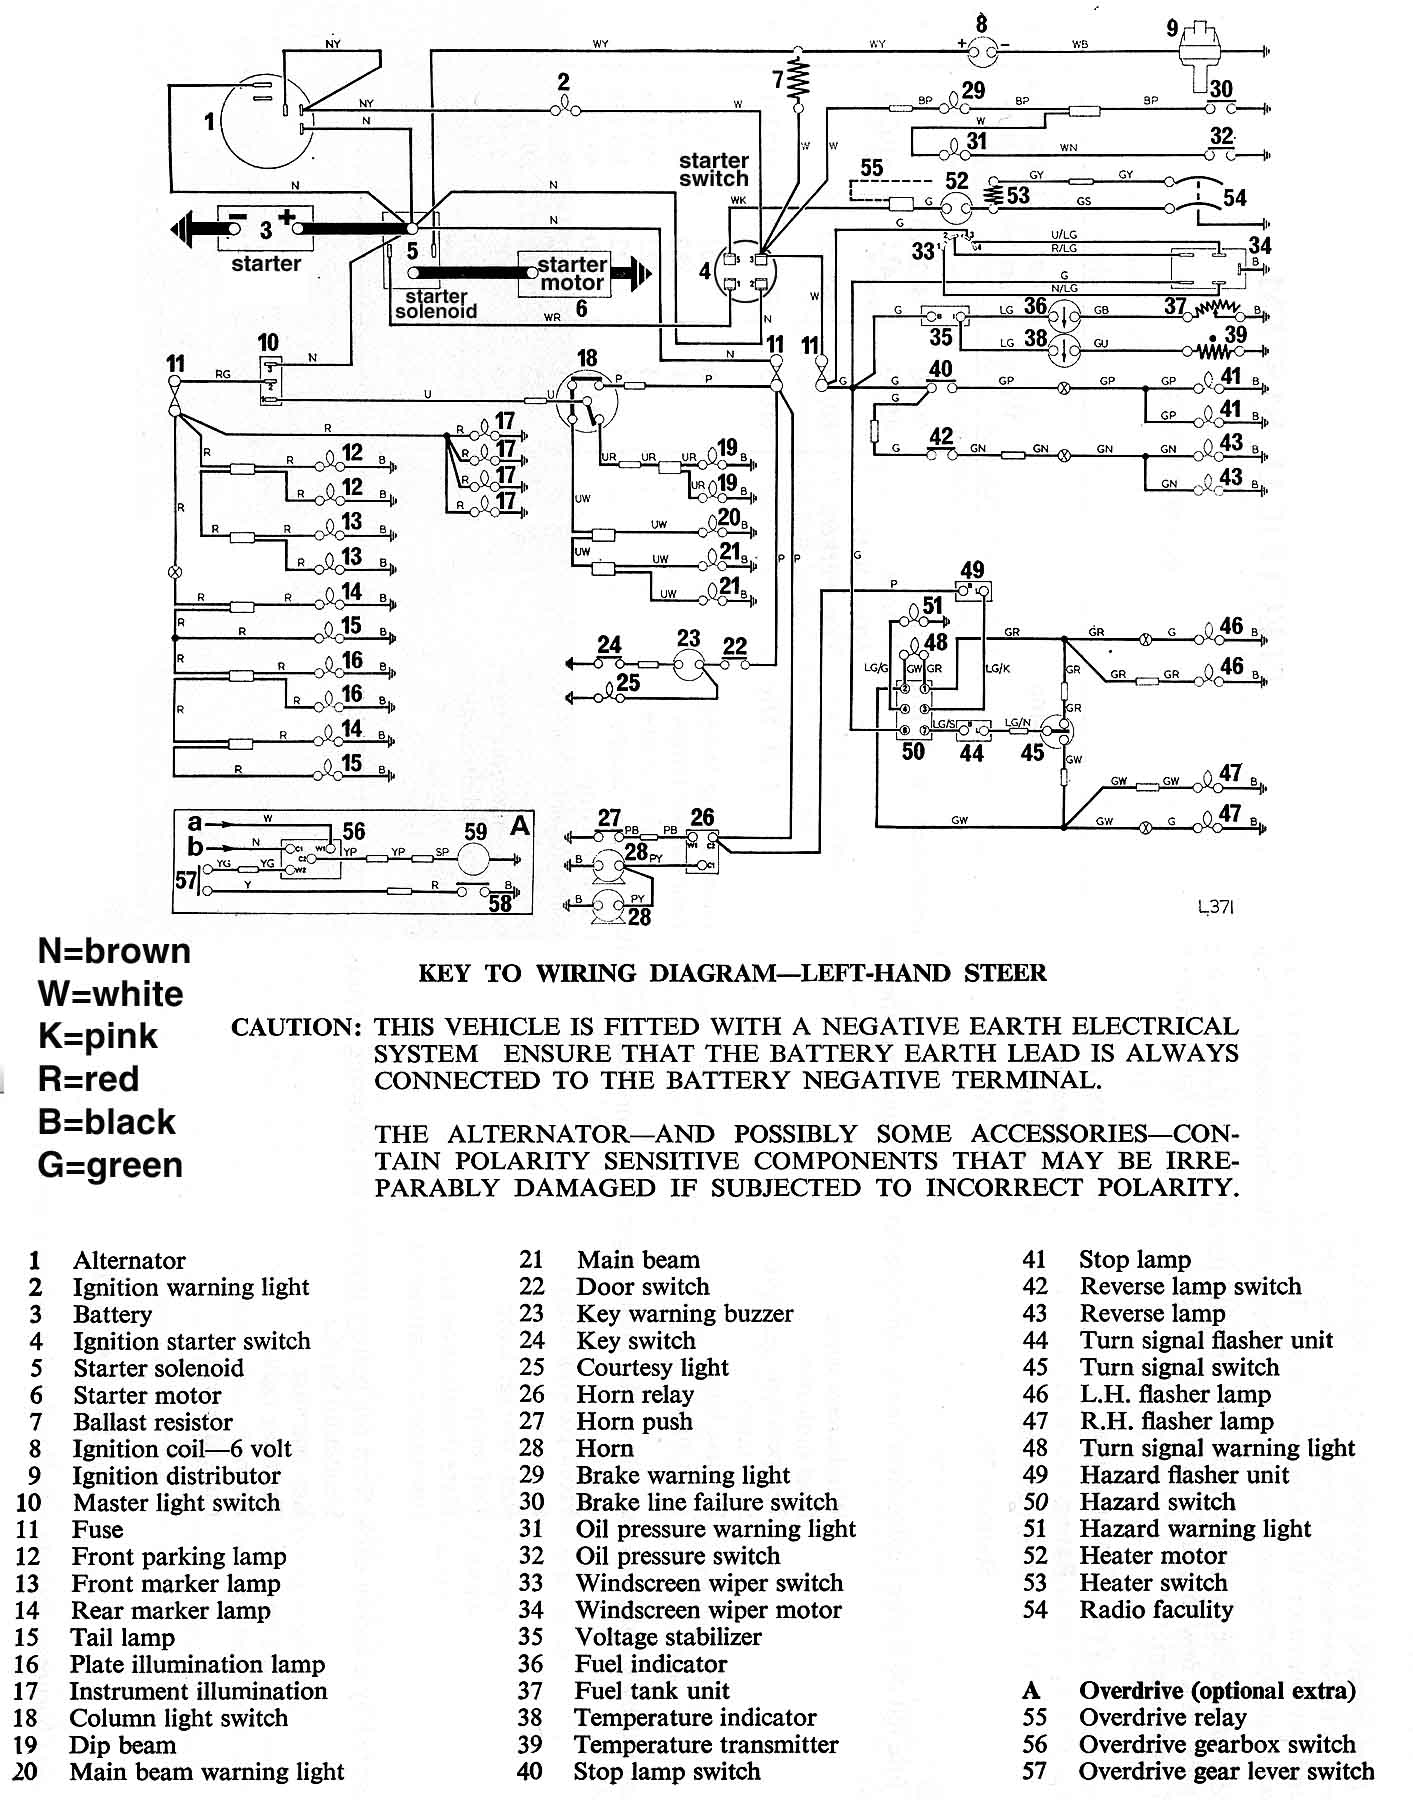 Wiring Schematics And Diagrams Triumph Spitfire Gt6 Herald 4 Conductor Humbucker Diagram Mkiv